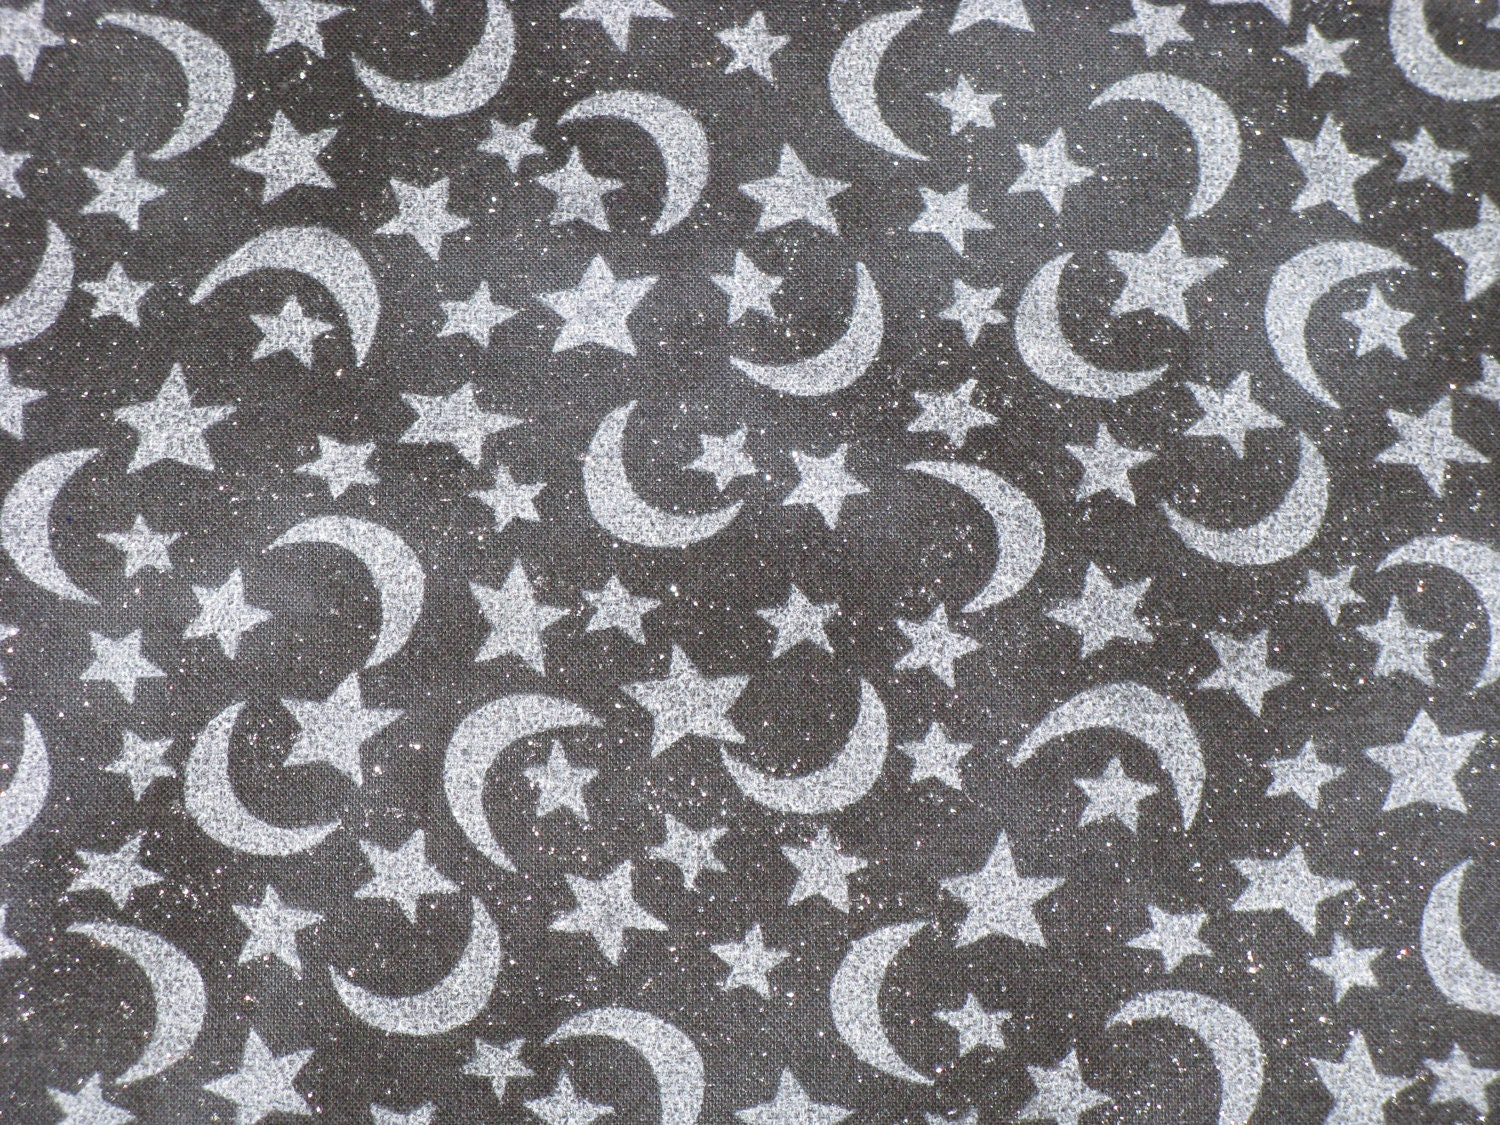 Halloween fabric cotton gray moons stars silver by corgipal for Fabric with moons and stars